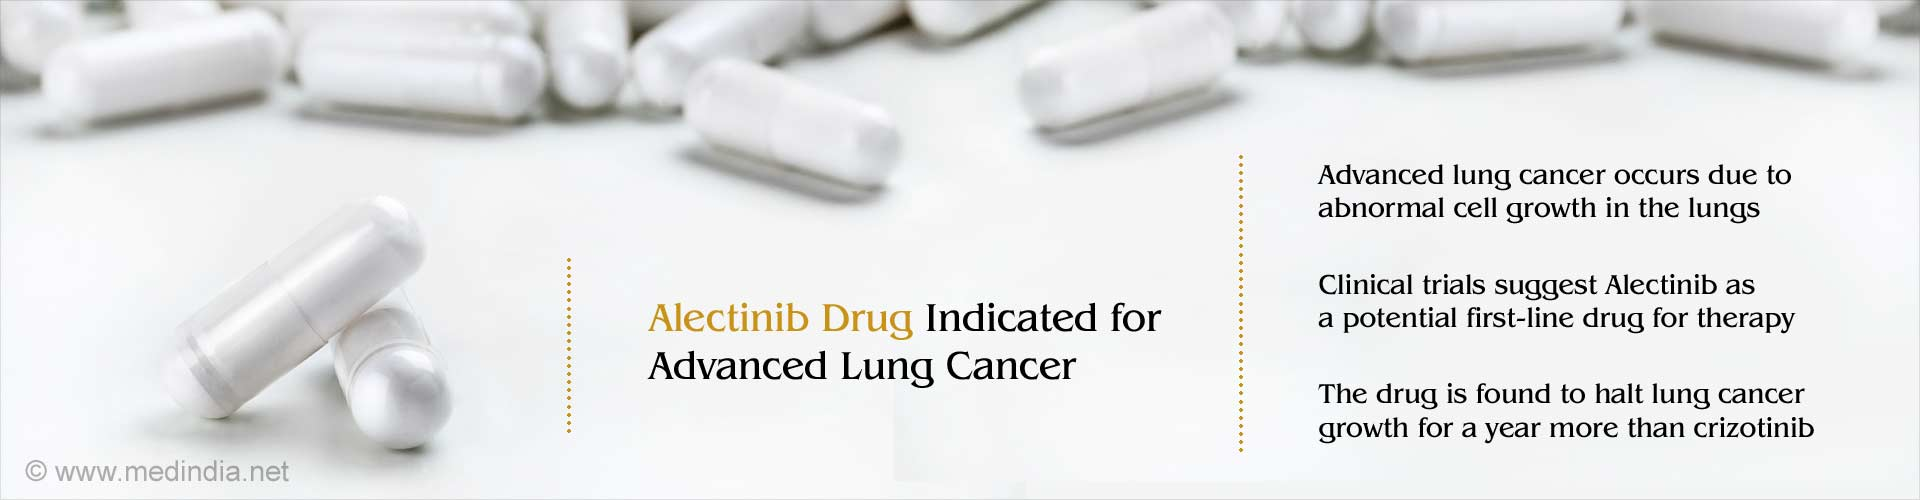 Alectinib Replaces Crizotinib Drug as Potential Therapy for Advanced Lung Cancer